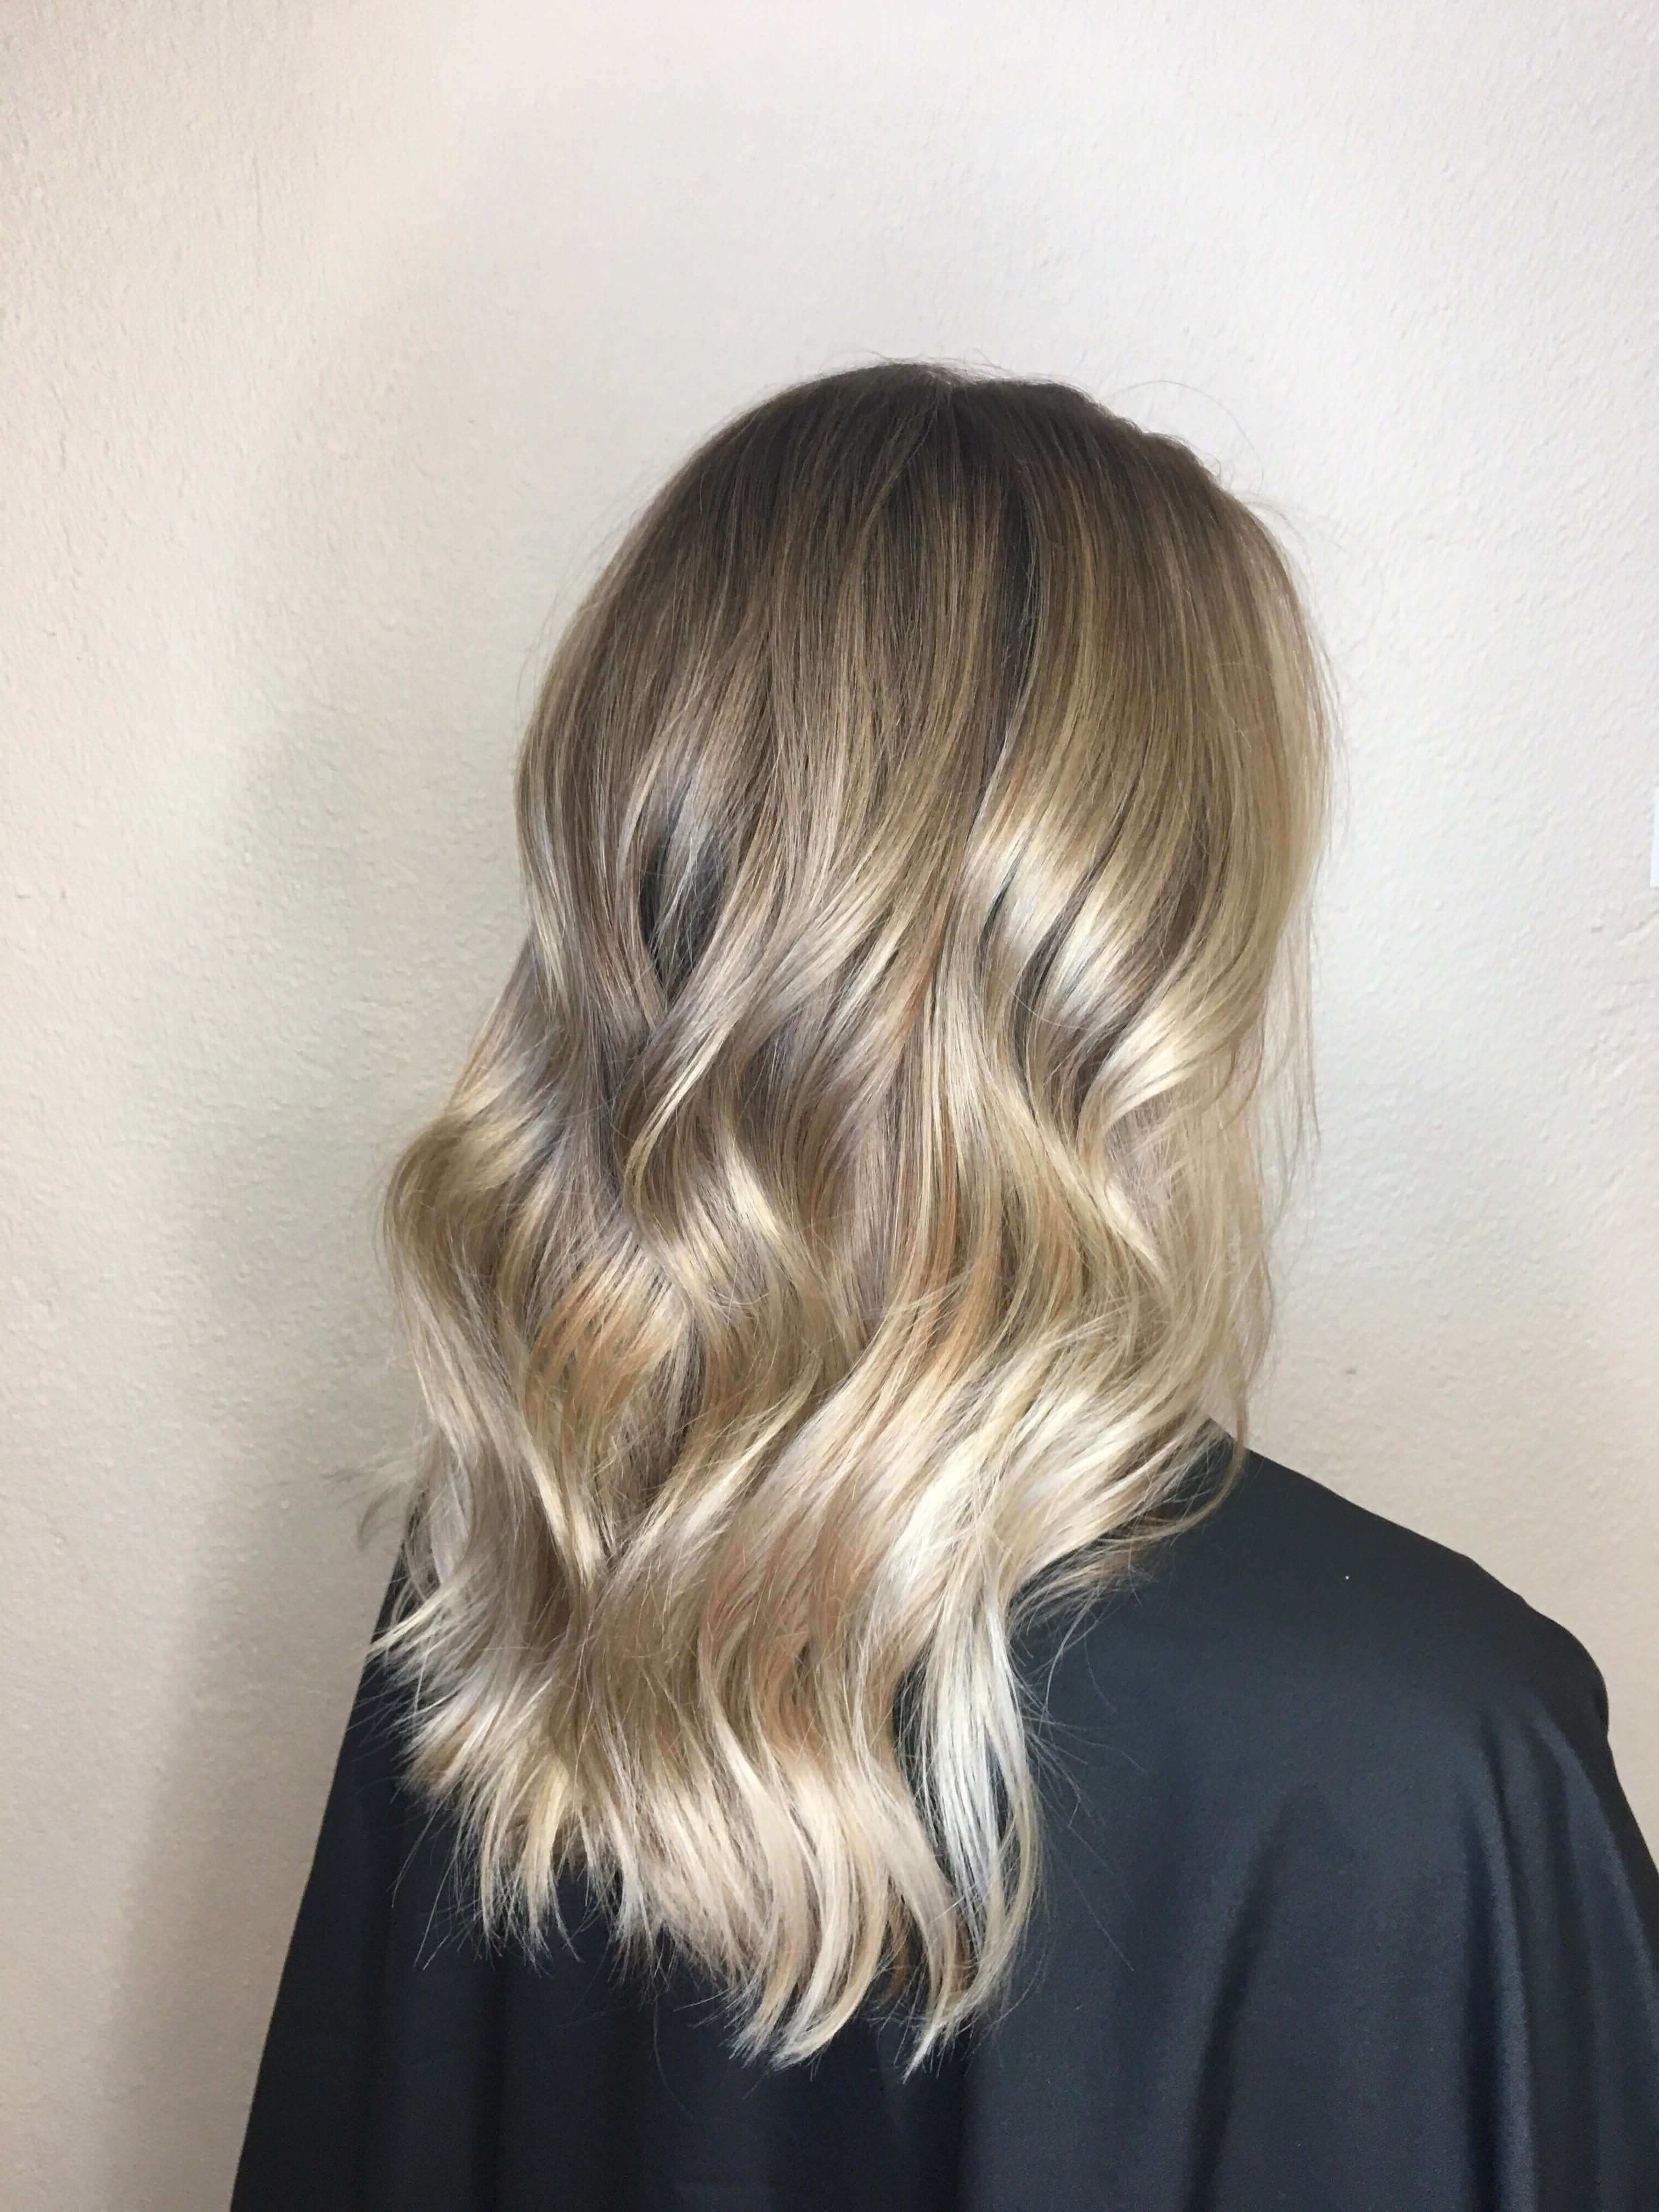 30 Blonde Medium Hairstyles Ideas For Women Intended For Current Dishwater Waves Blonde Hairstyles (View 3 of 20)